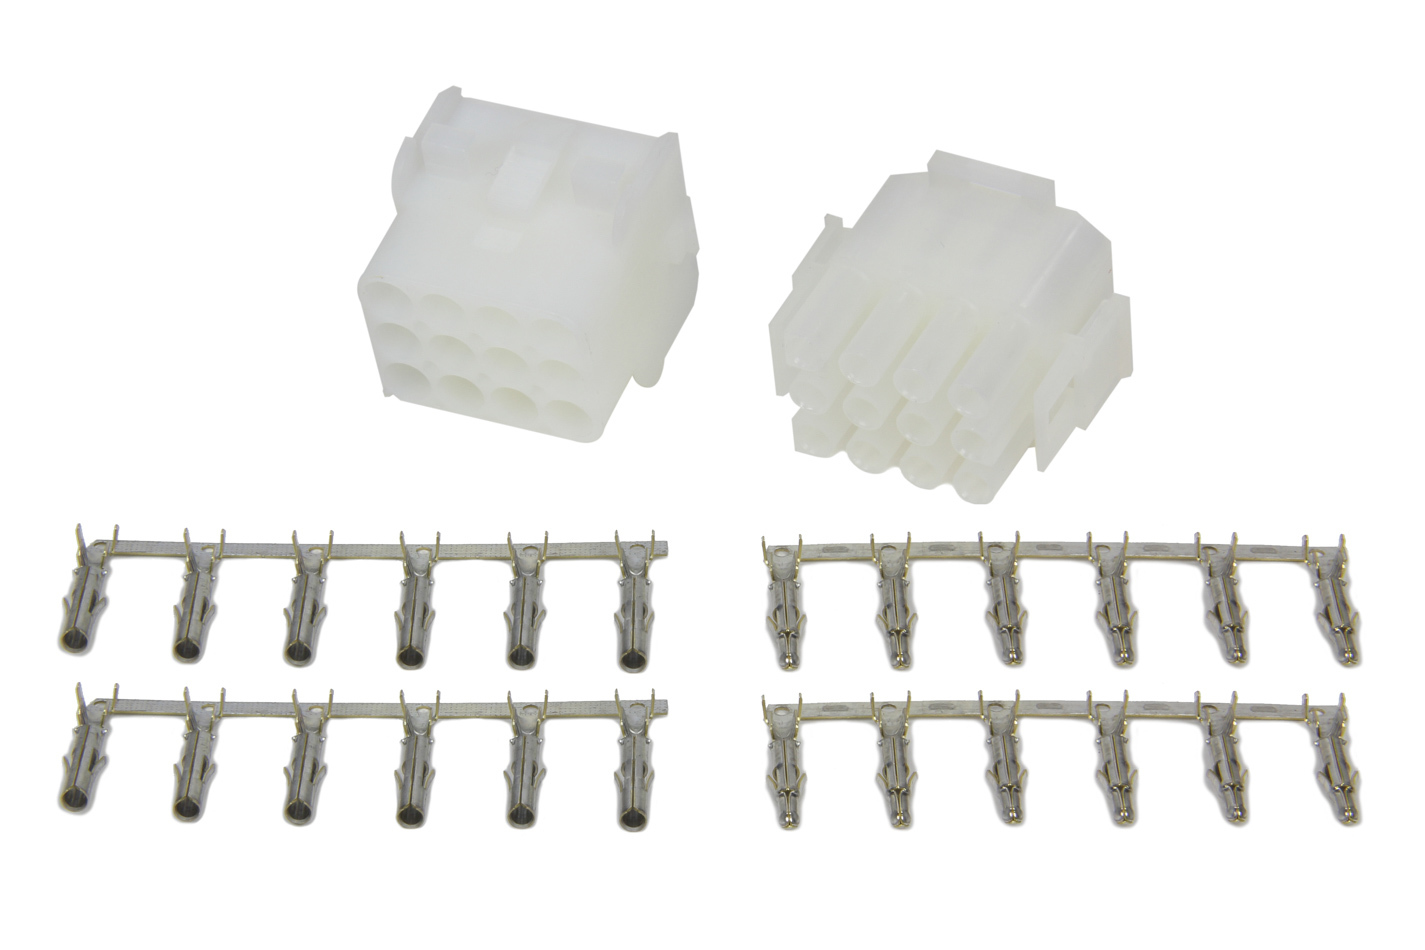 Painless Wiring 40011 Wire Terminal, Quick Disconnect, Female / Male, 12 Wire, Plastic, Natural, 20-14 Gauge Wire, Kit